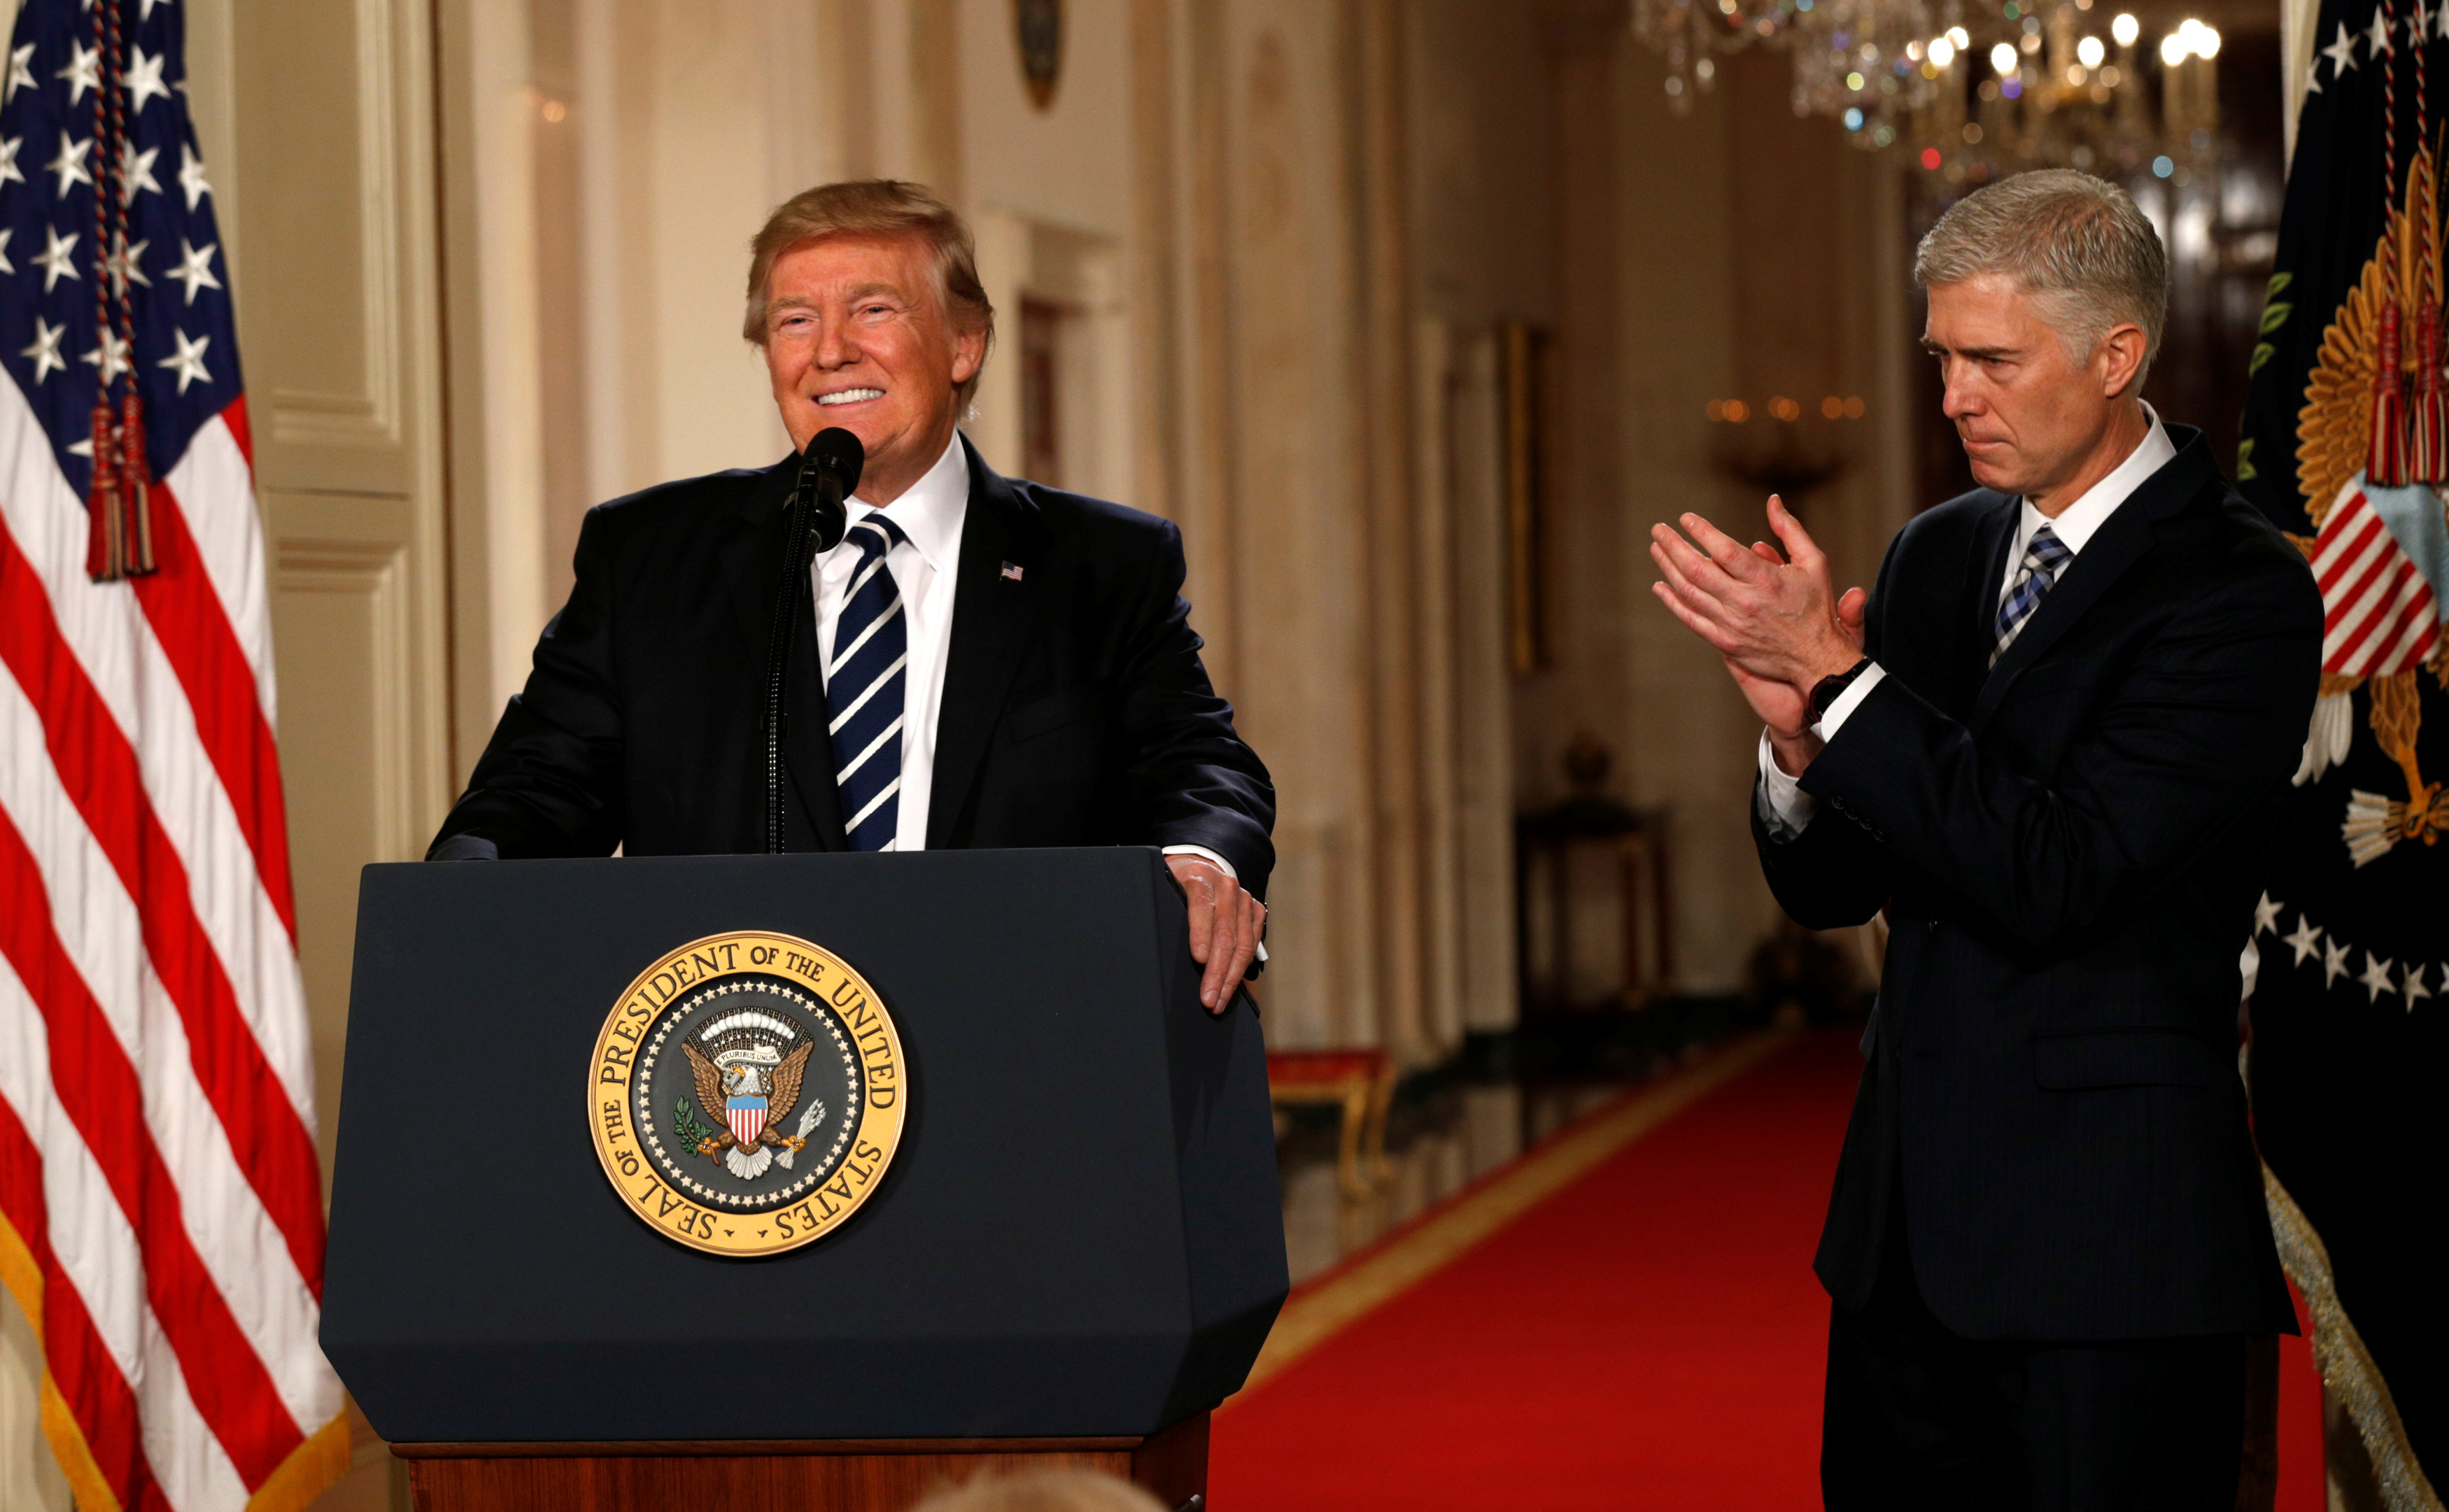 FILE PHOTO: U.S. President Donald Trump announces his nomination of Neil Gorsuch to be an associate justice of the U.S. Supreme Court as Gorsuch (R) applauds at the White House in Washington, U.S., January 31, 2017. REUTERS/Kevin Lamarque/File Photo